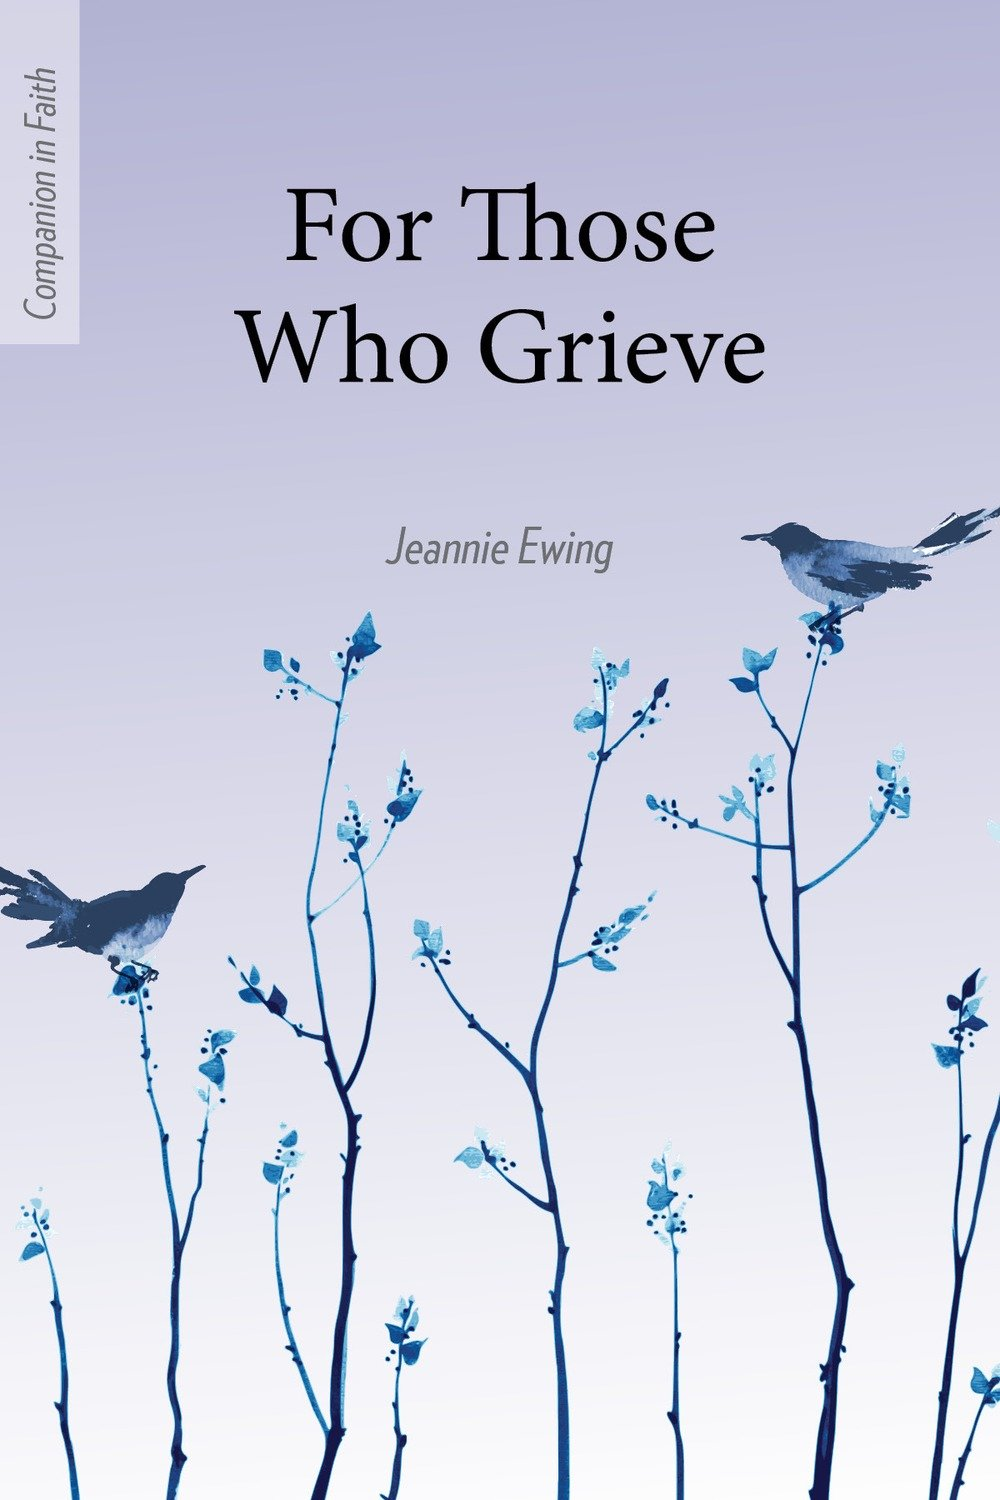 For Those Who Grieve